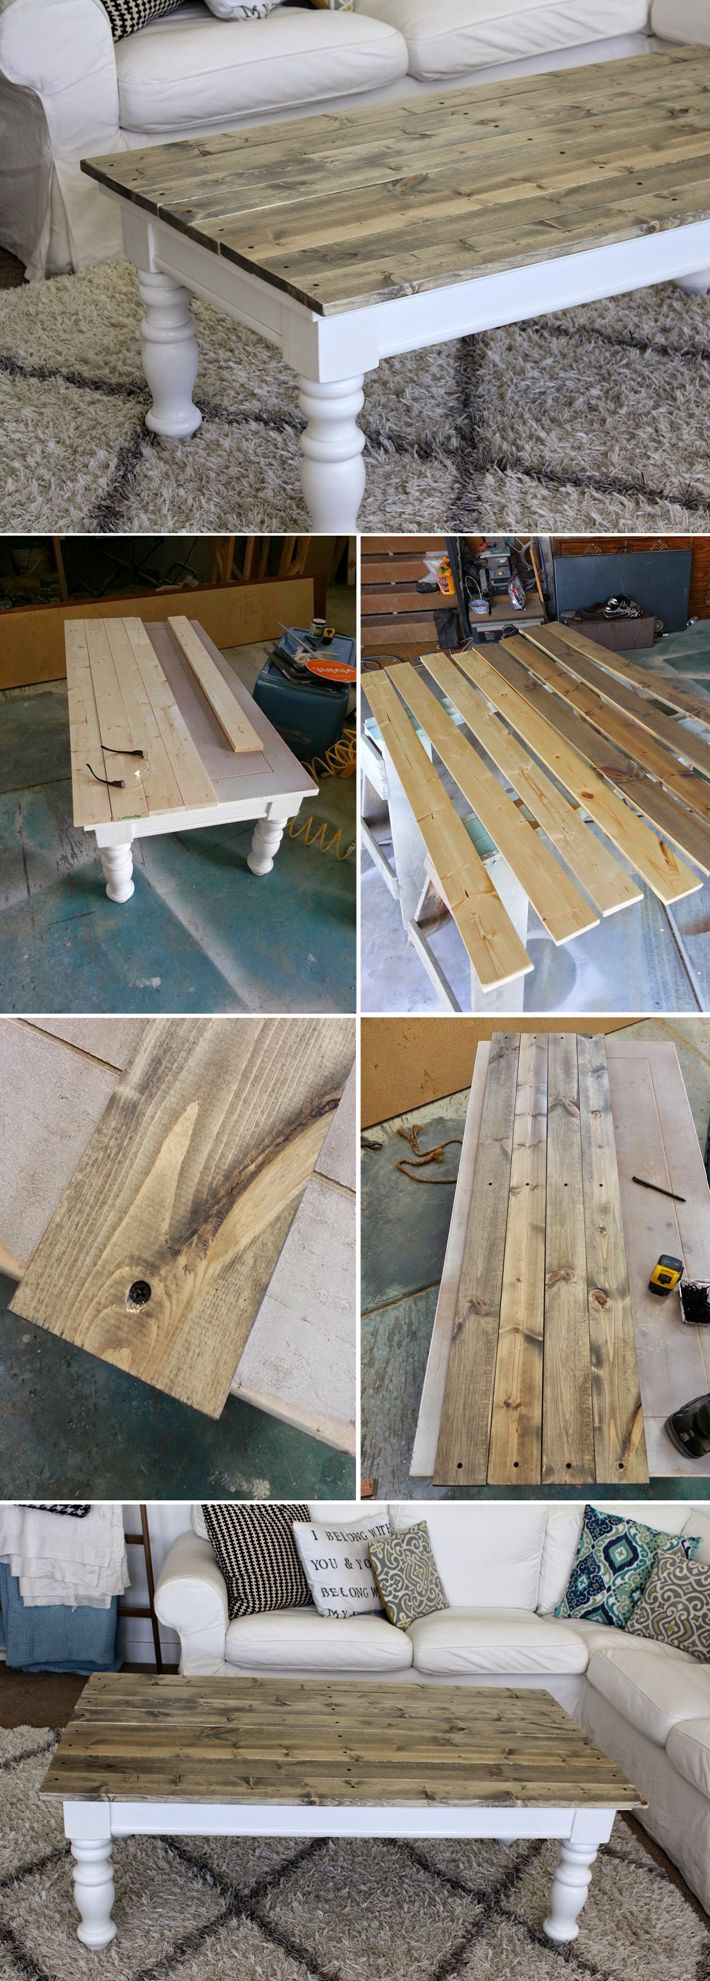 Farmhouse Style Coffee Table: Once The Legs Were Painted, I Measured And  Cut Wood